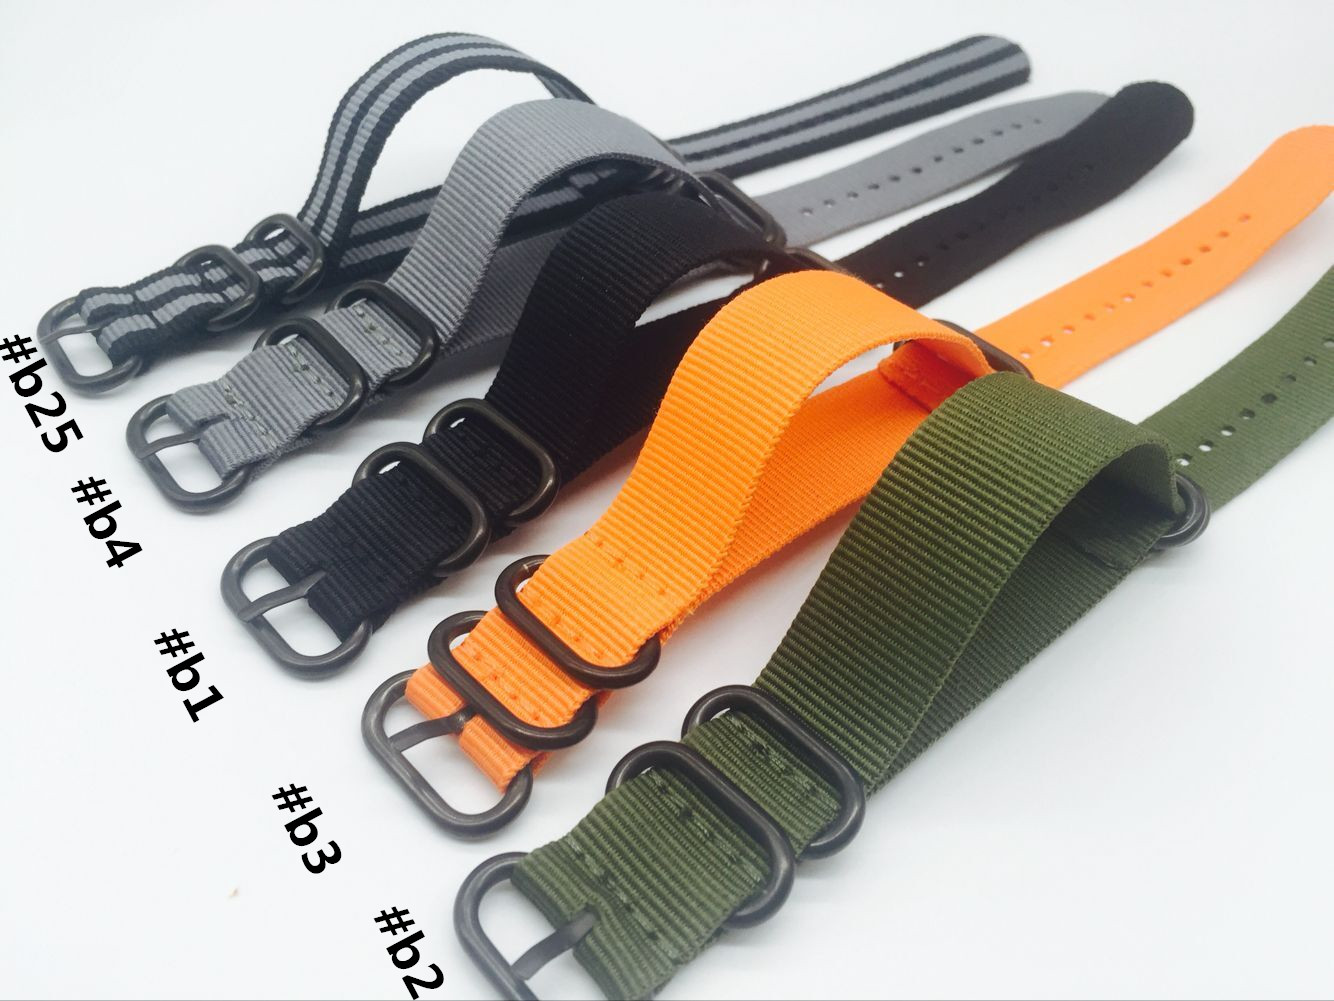 20/22/24 mm Black Buckle Green Navy Strong Solid Army Military nato fabric Nylon Watch watchbands Woven Straps Band belt 20mm 18 mm watchbands men ladies multicolor black red nato nylon army military sports watches straps wristwatch band buckle 18mm